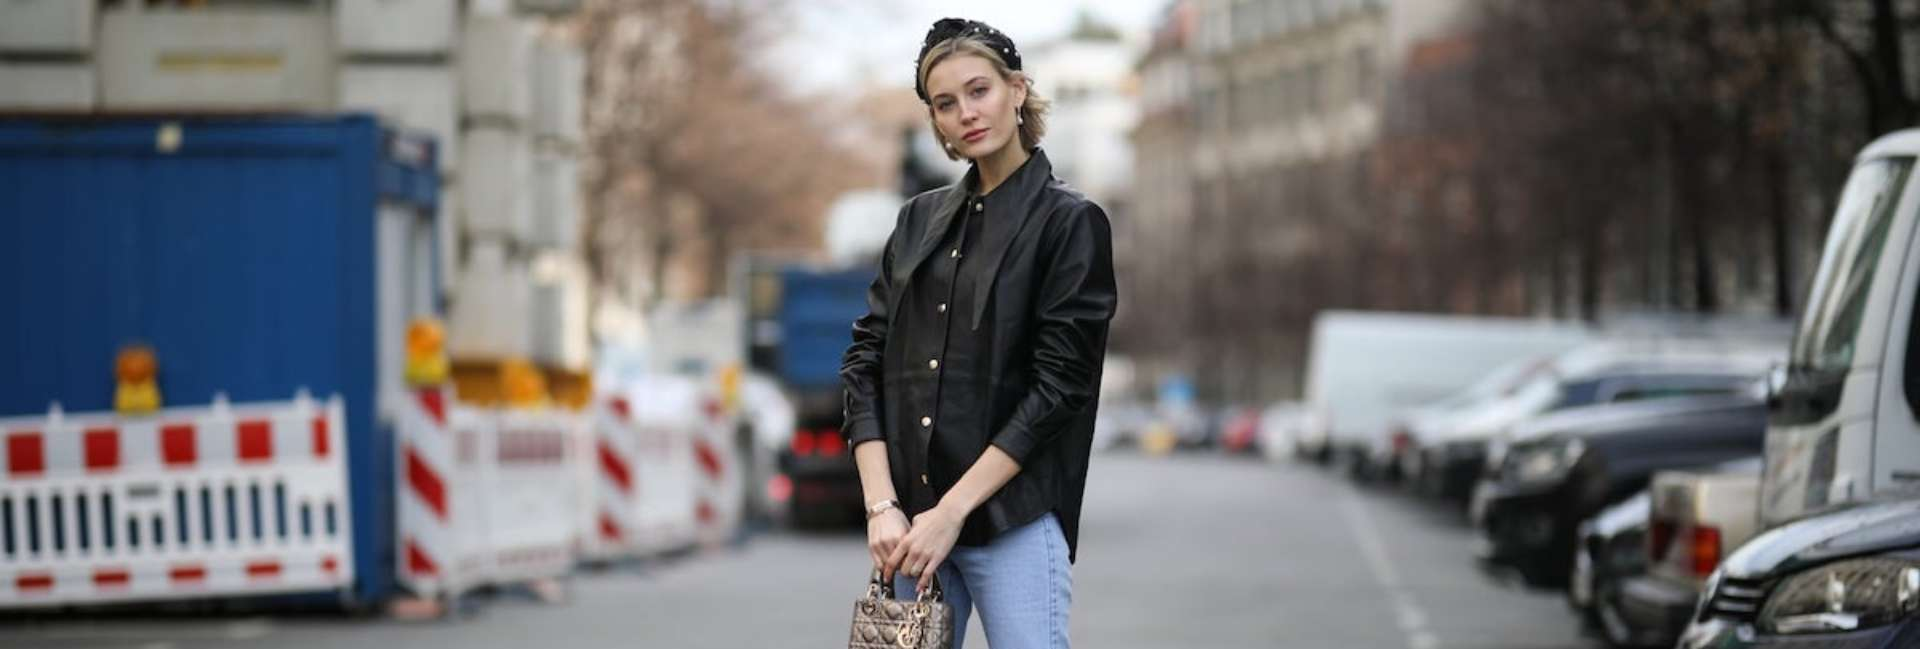 Street style stars and hair accessories